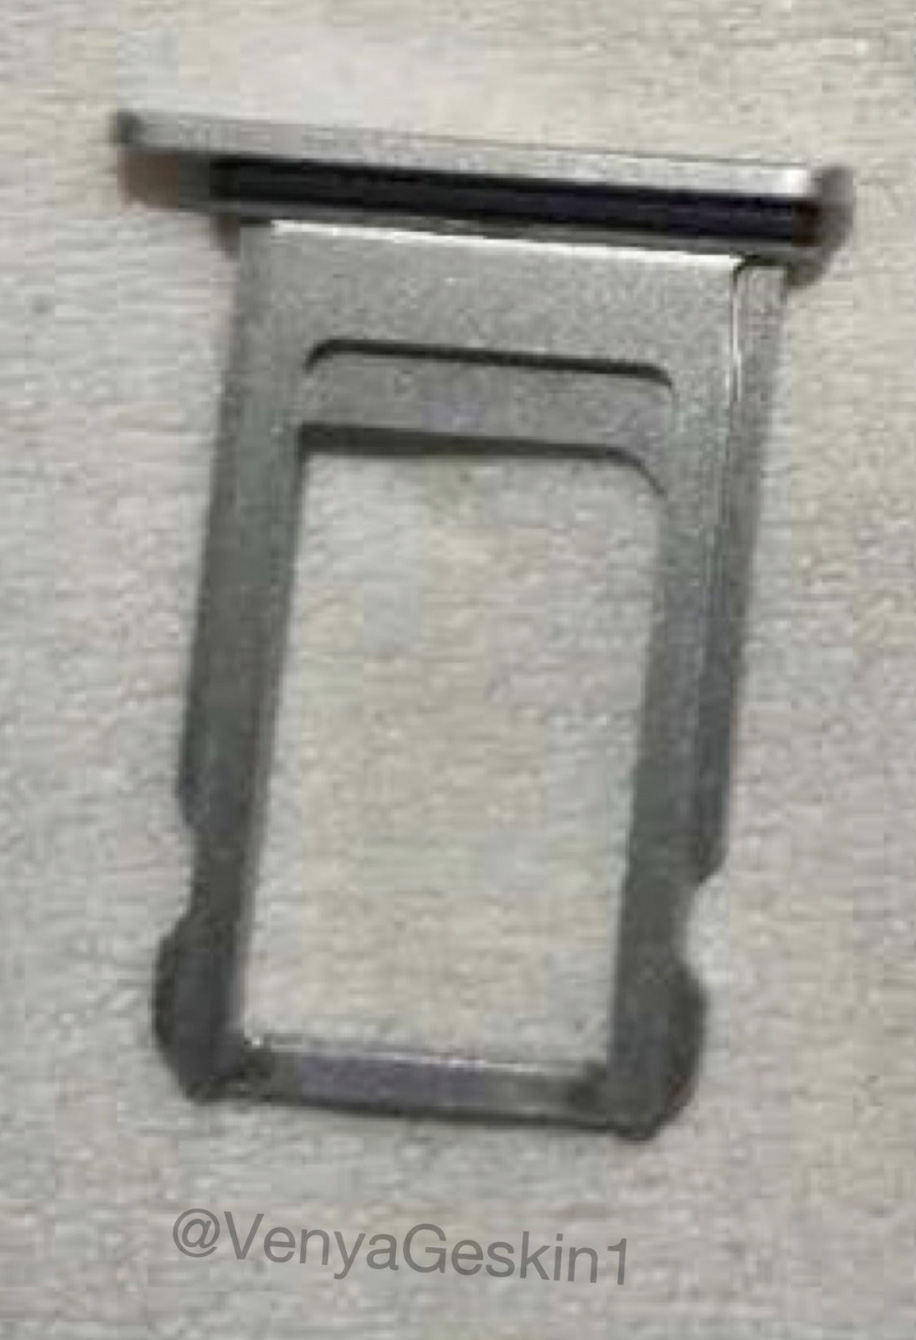 Supposed SIM tray of the iPhone Edition